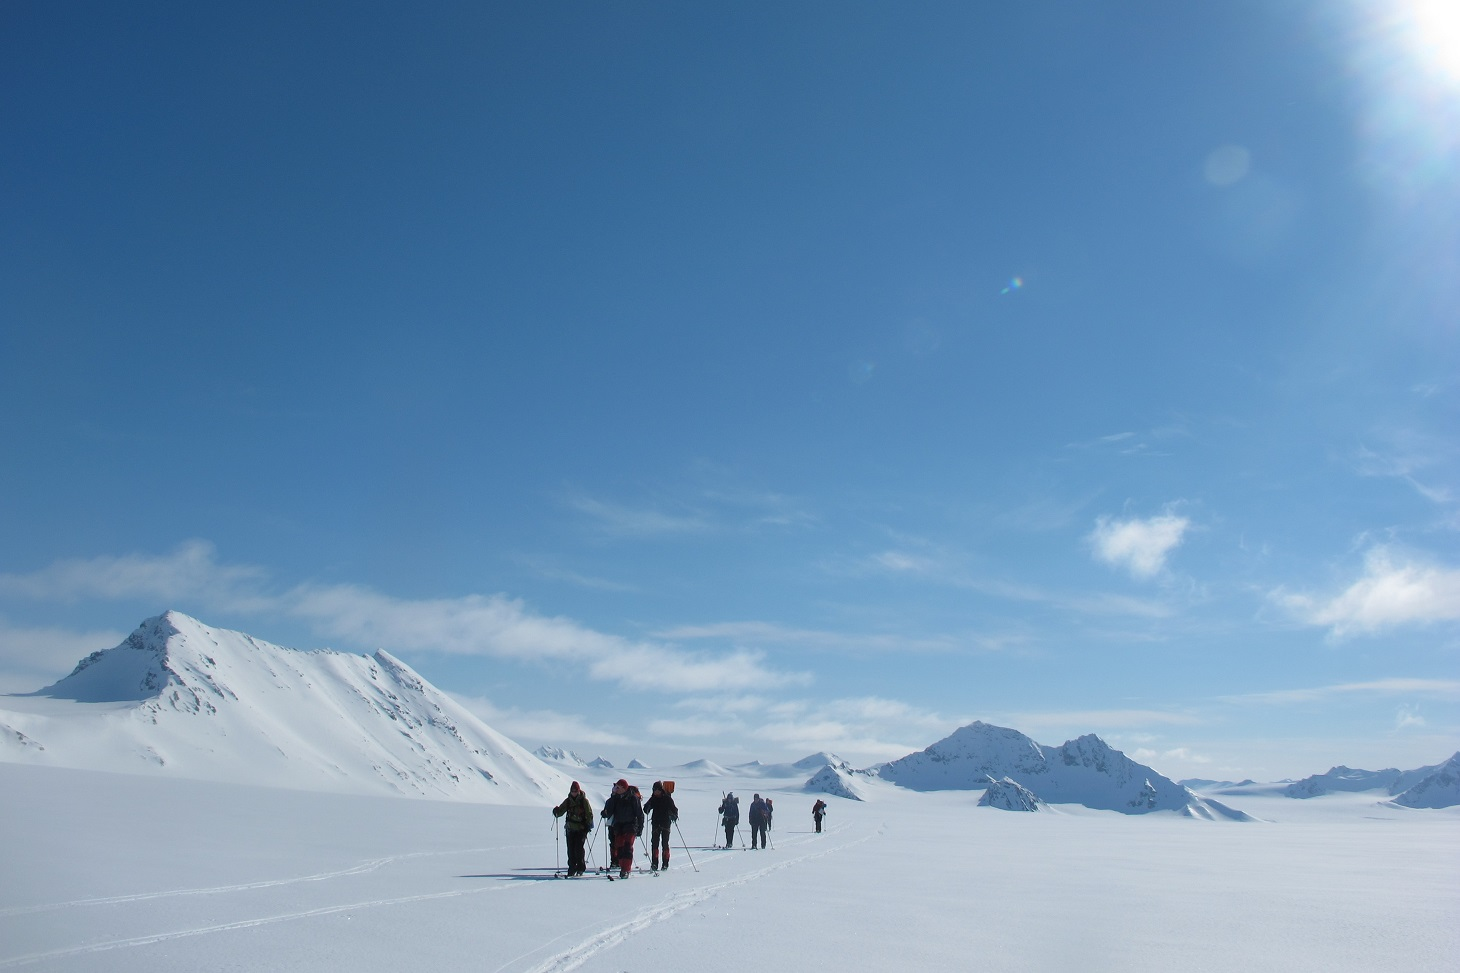 Skidexpedition över Svalbard 2023